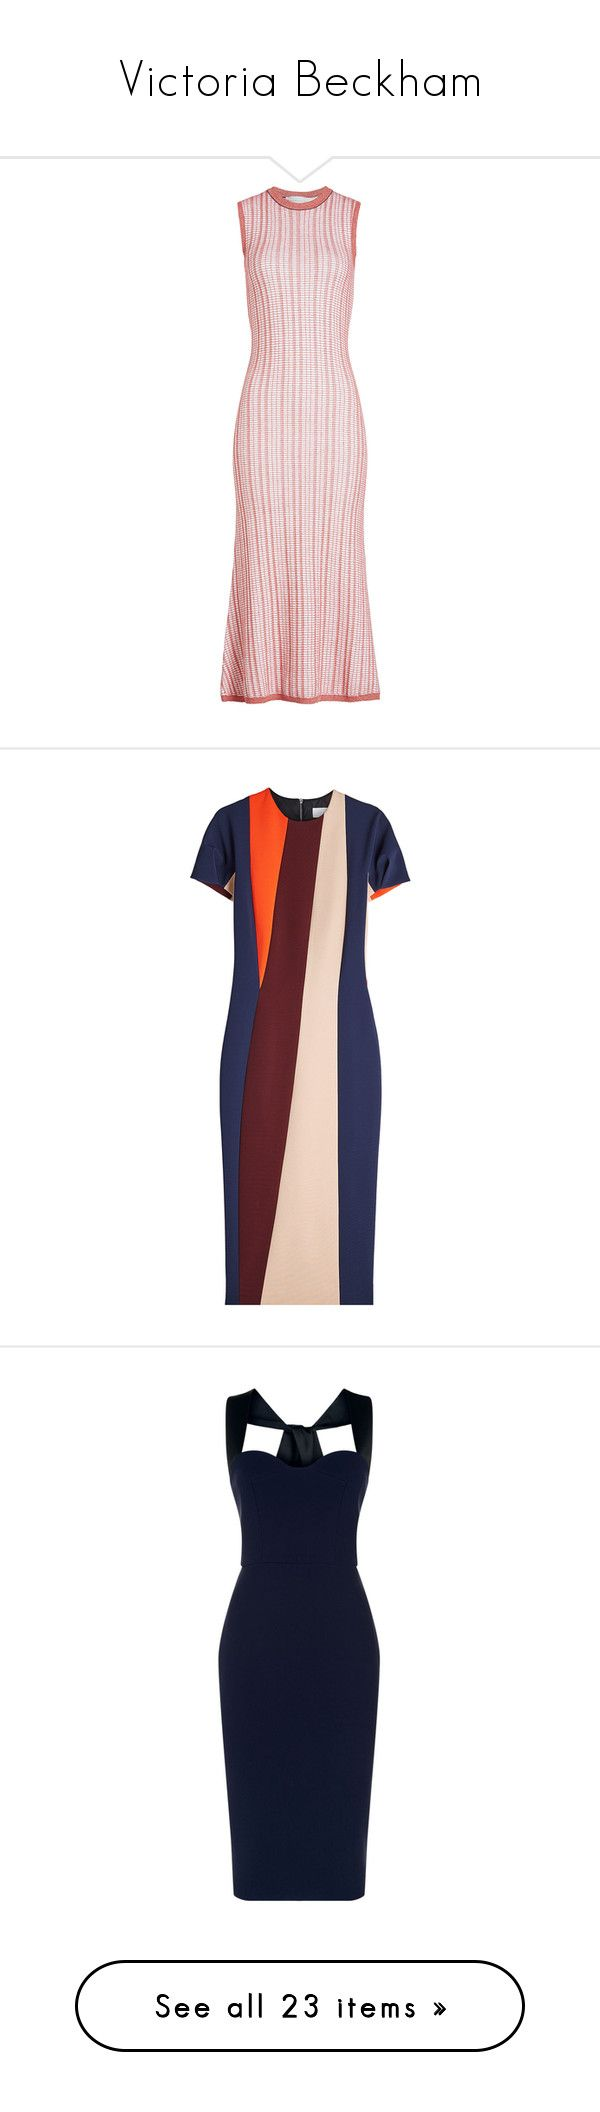 """Victoria Beckham"" by bliznec ❤ liked on Polyvore featuring dresses, multicolored, victoria beckham, rib knit dress, victoria beckham dresses, ribbed knit dress, structured dress, stripe dress, striped short sleeve dress and pencil dress"